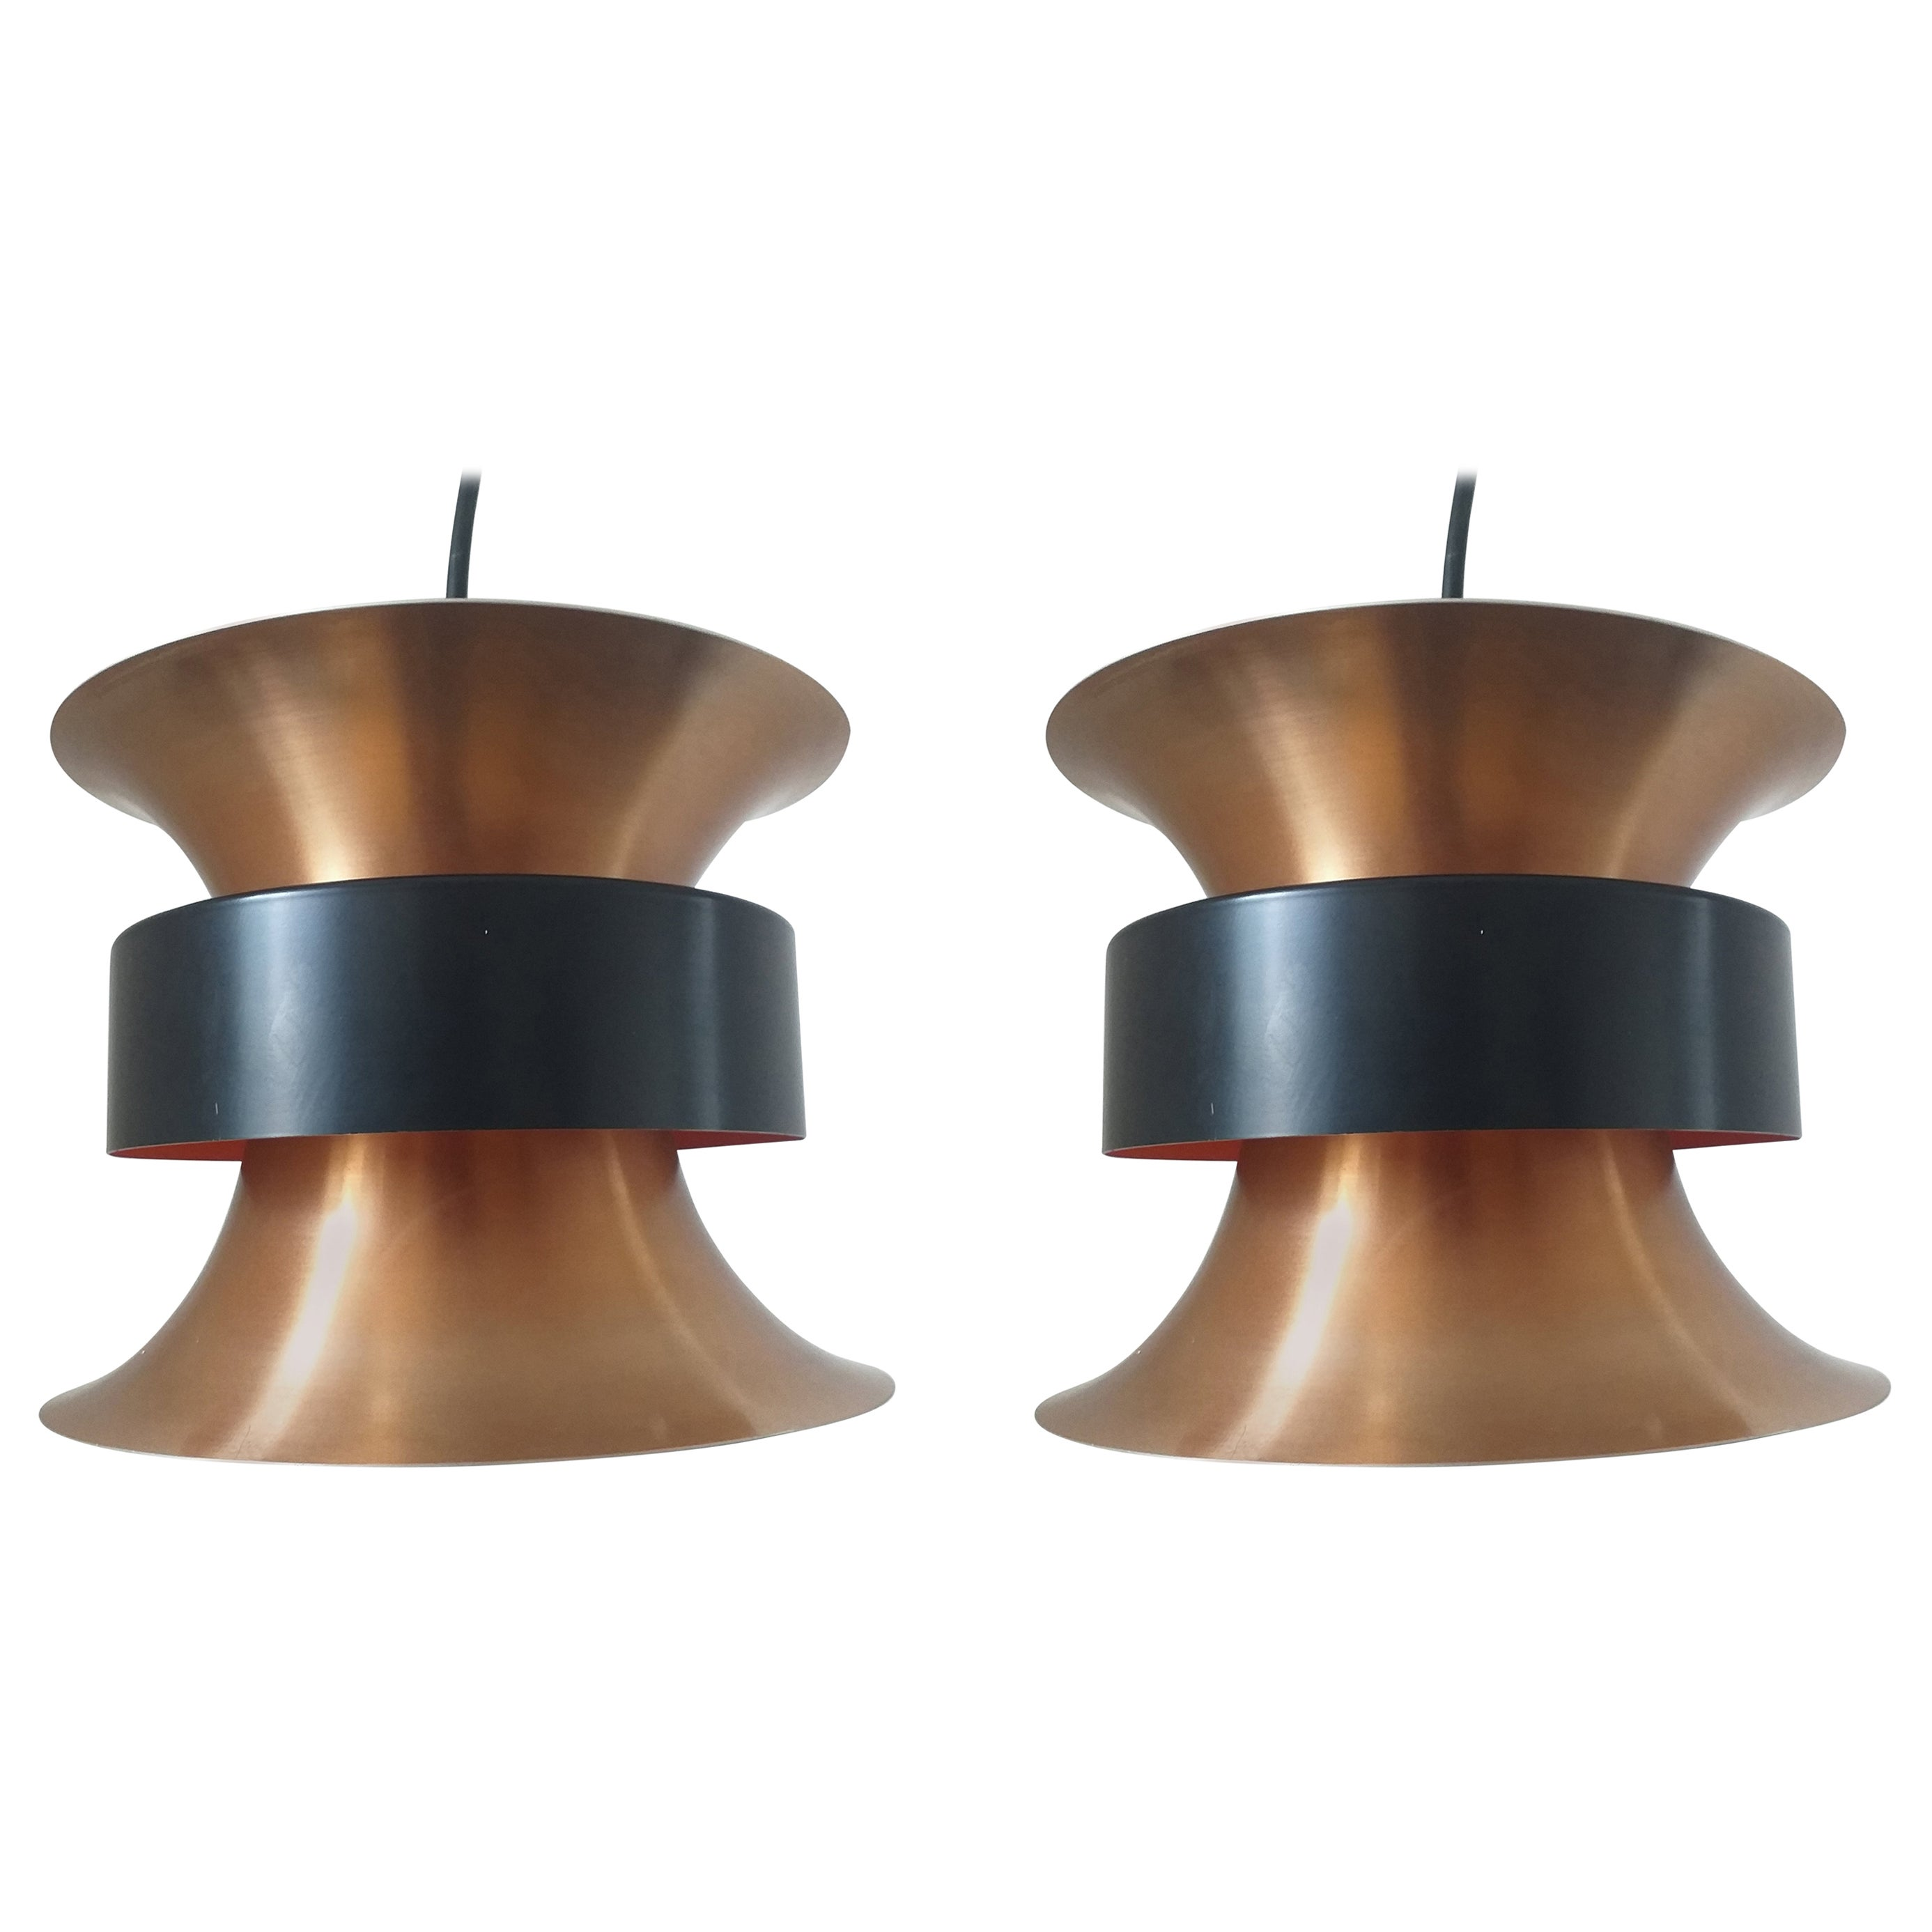 Pair of Midcentury Pendants Light Designed by Carl Thore, 1970s